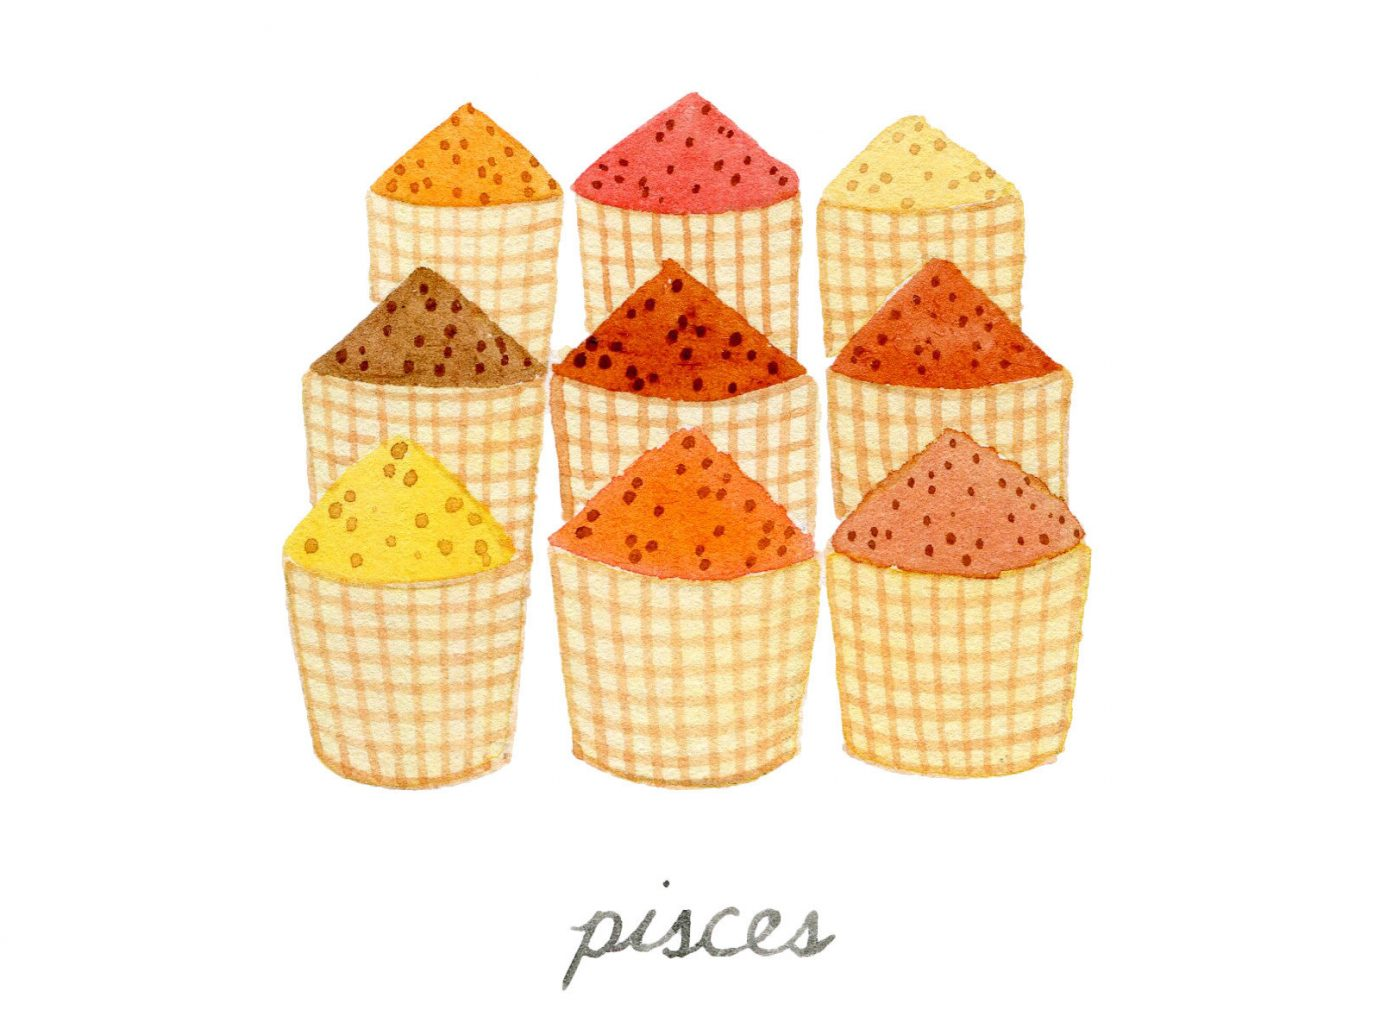 Style + Design ice cream cone food dessert dish pattern meal breakfast Design snack food